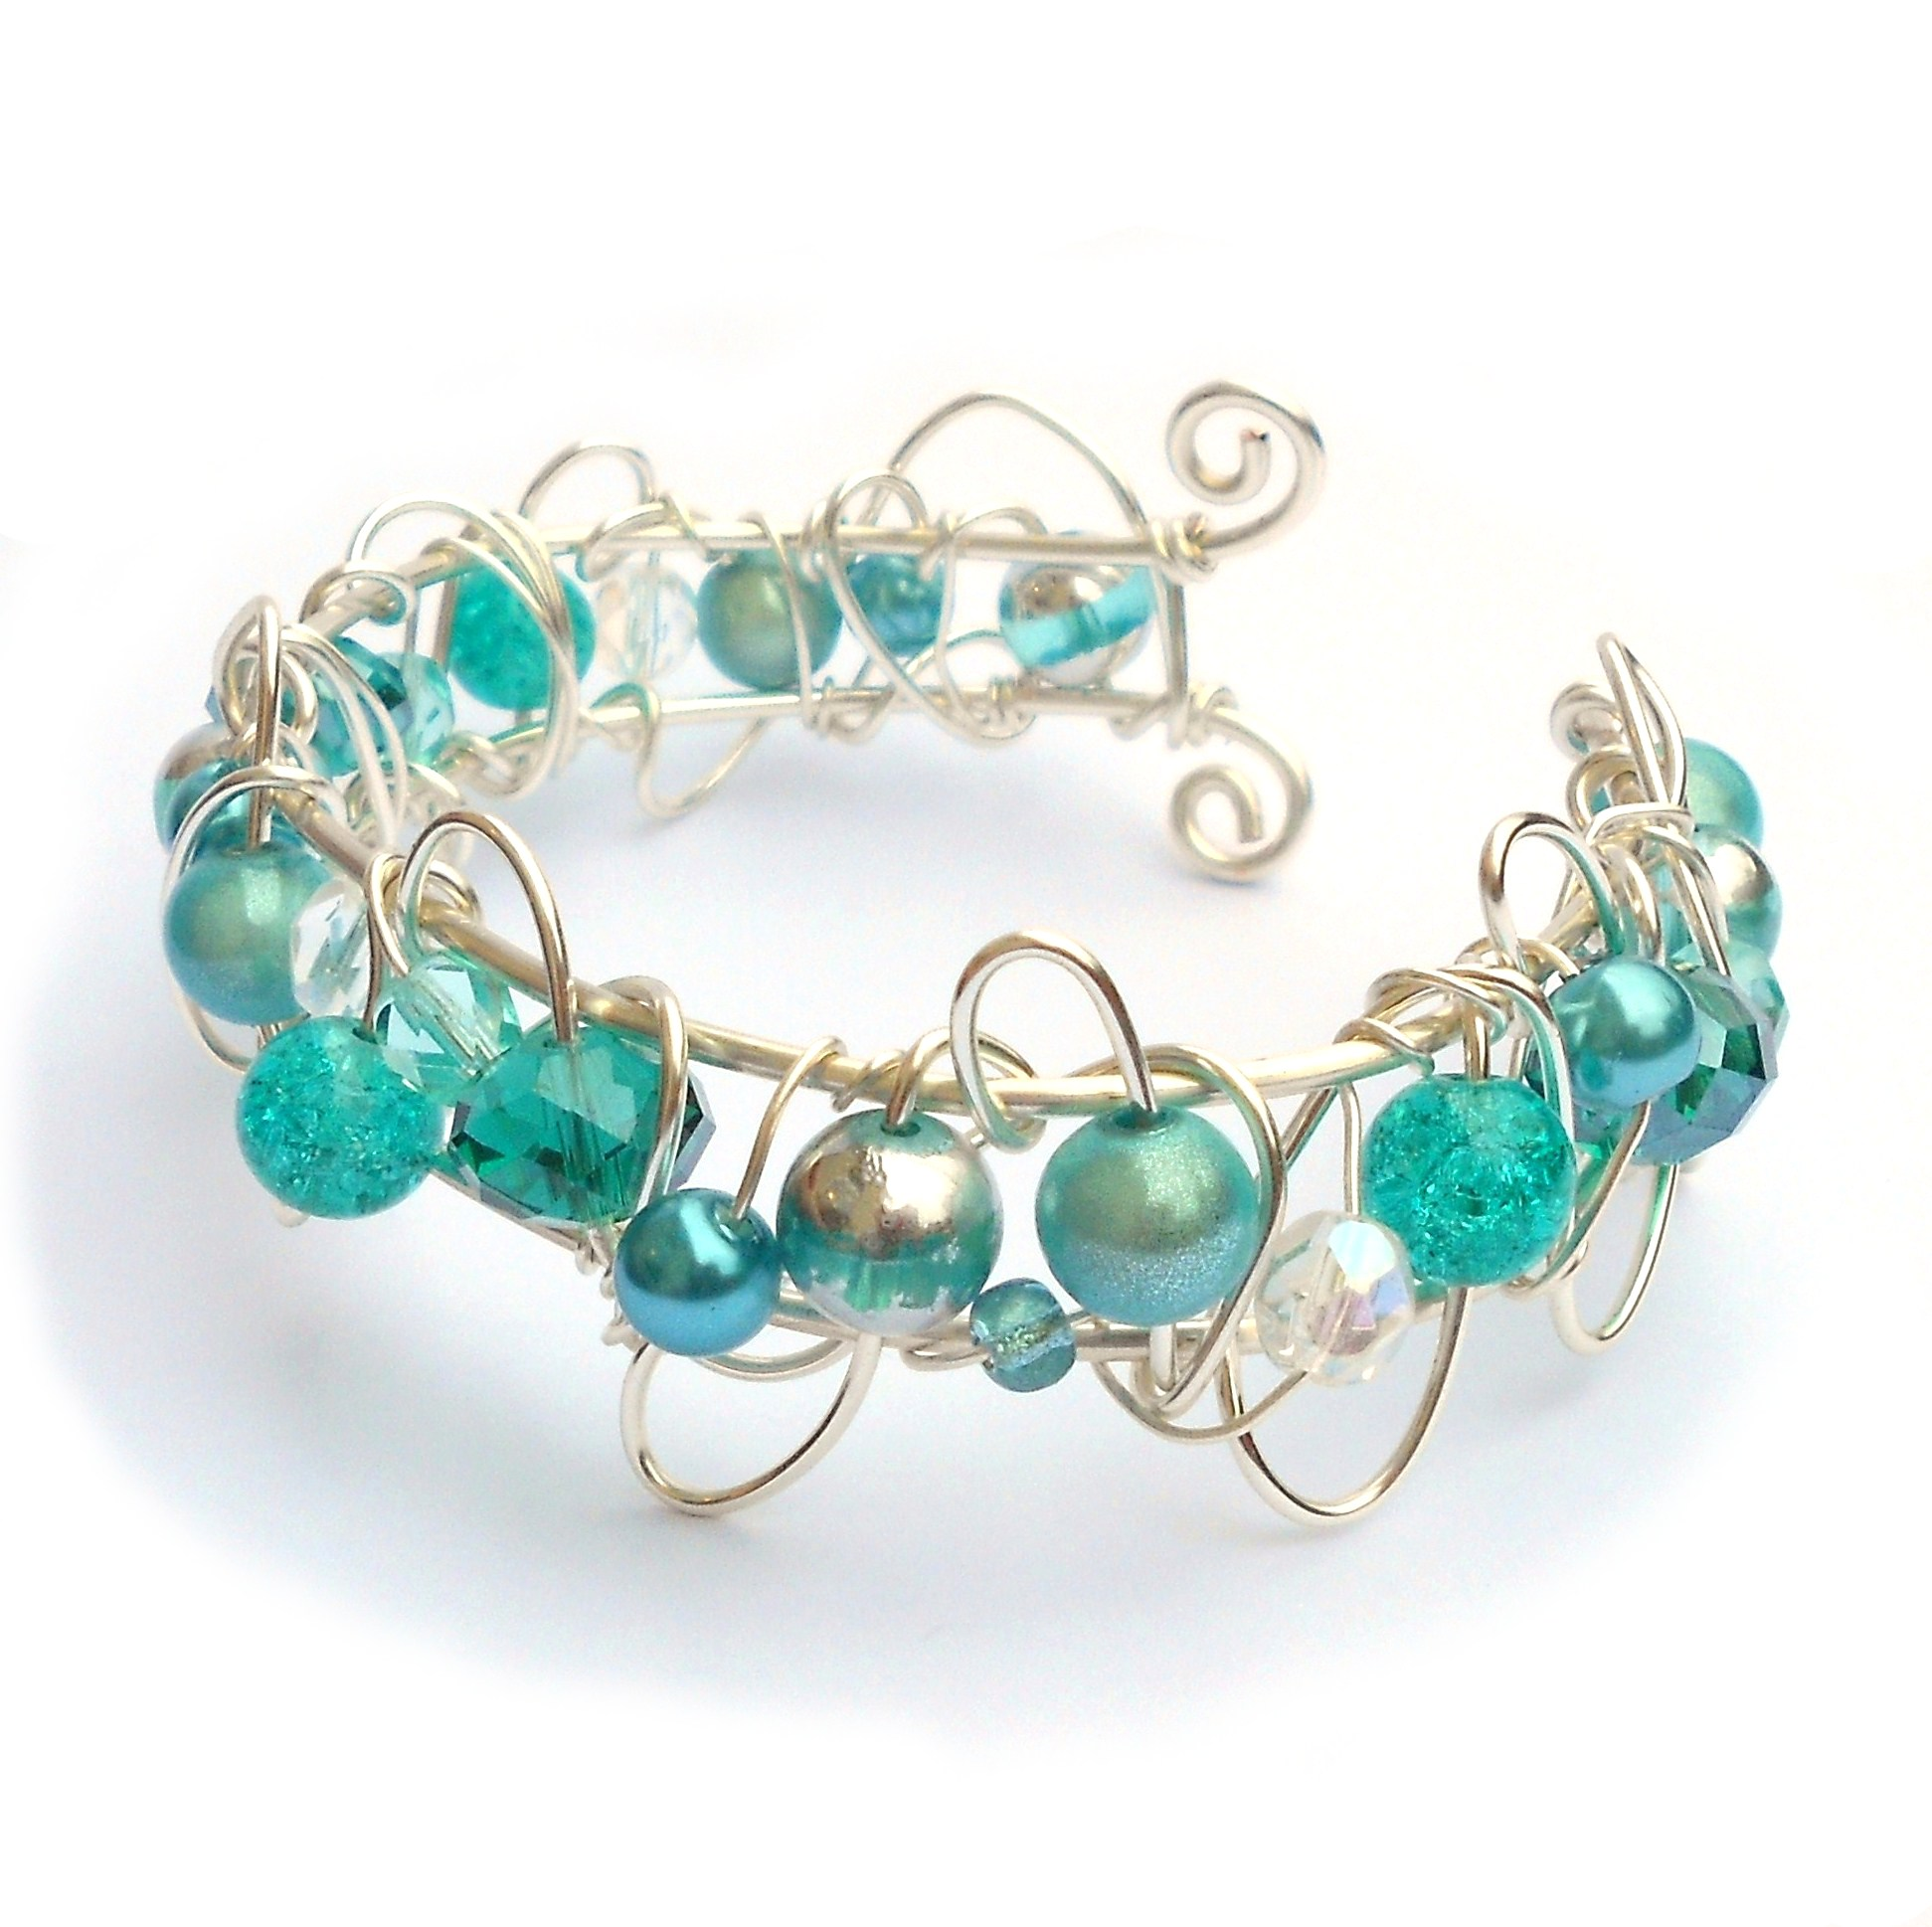 Vintage Wire Chain Jewelry Making Brass Chain Custom: Shades Of Turquoise Wire Cuff Bracelet